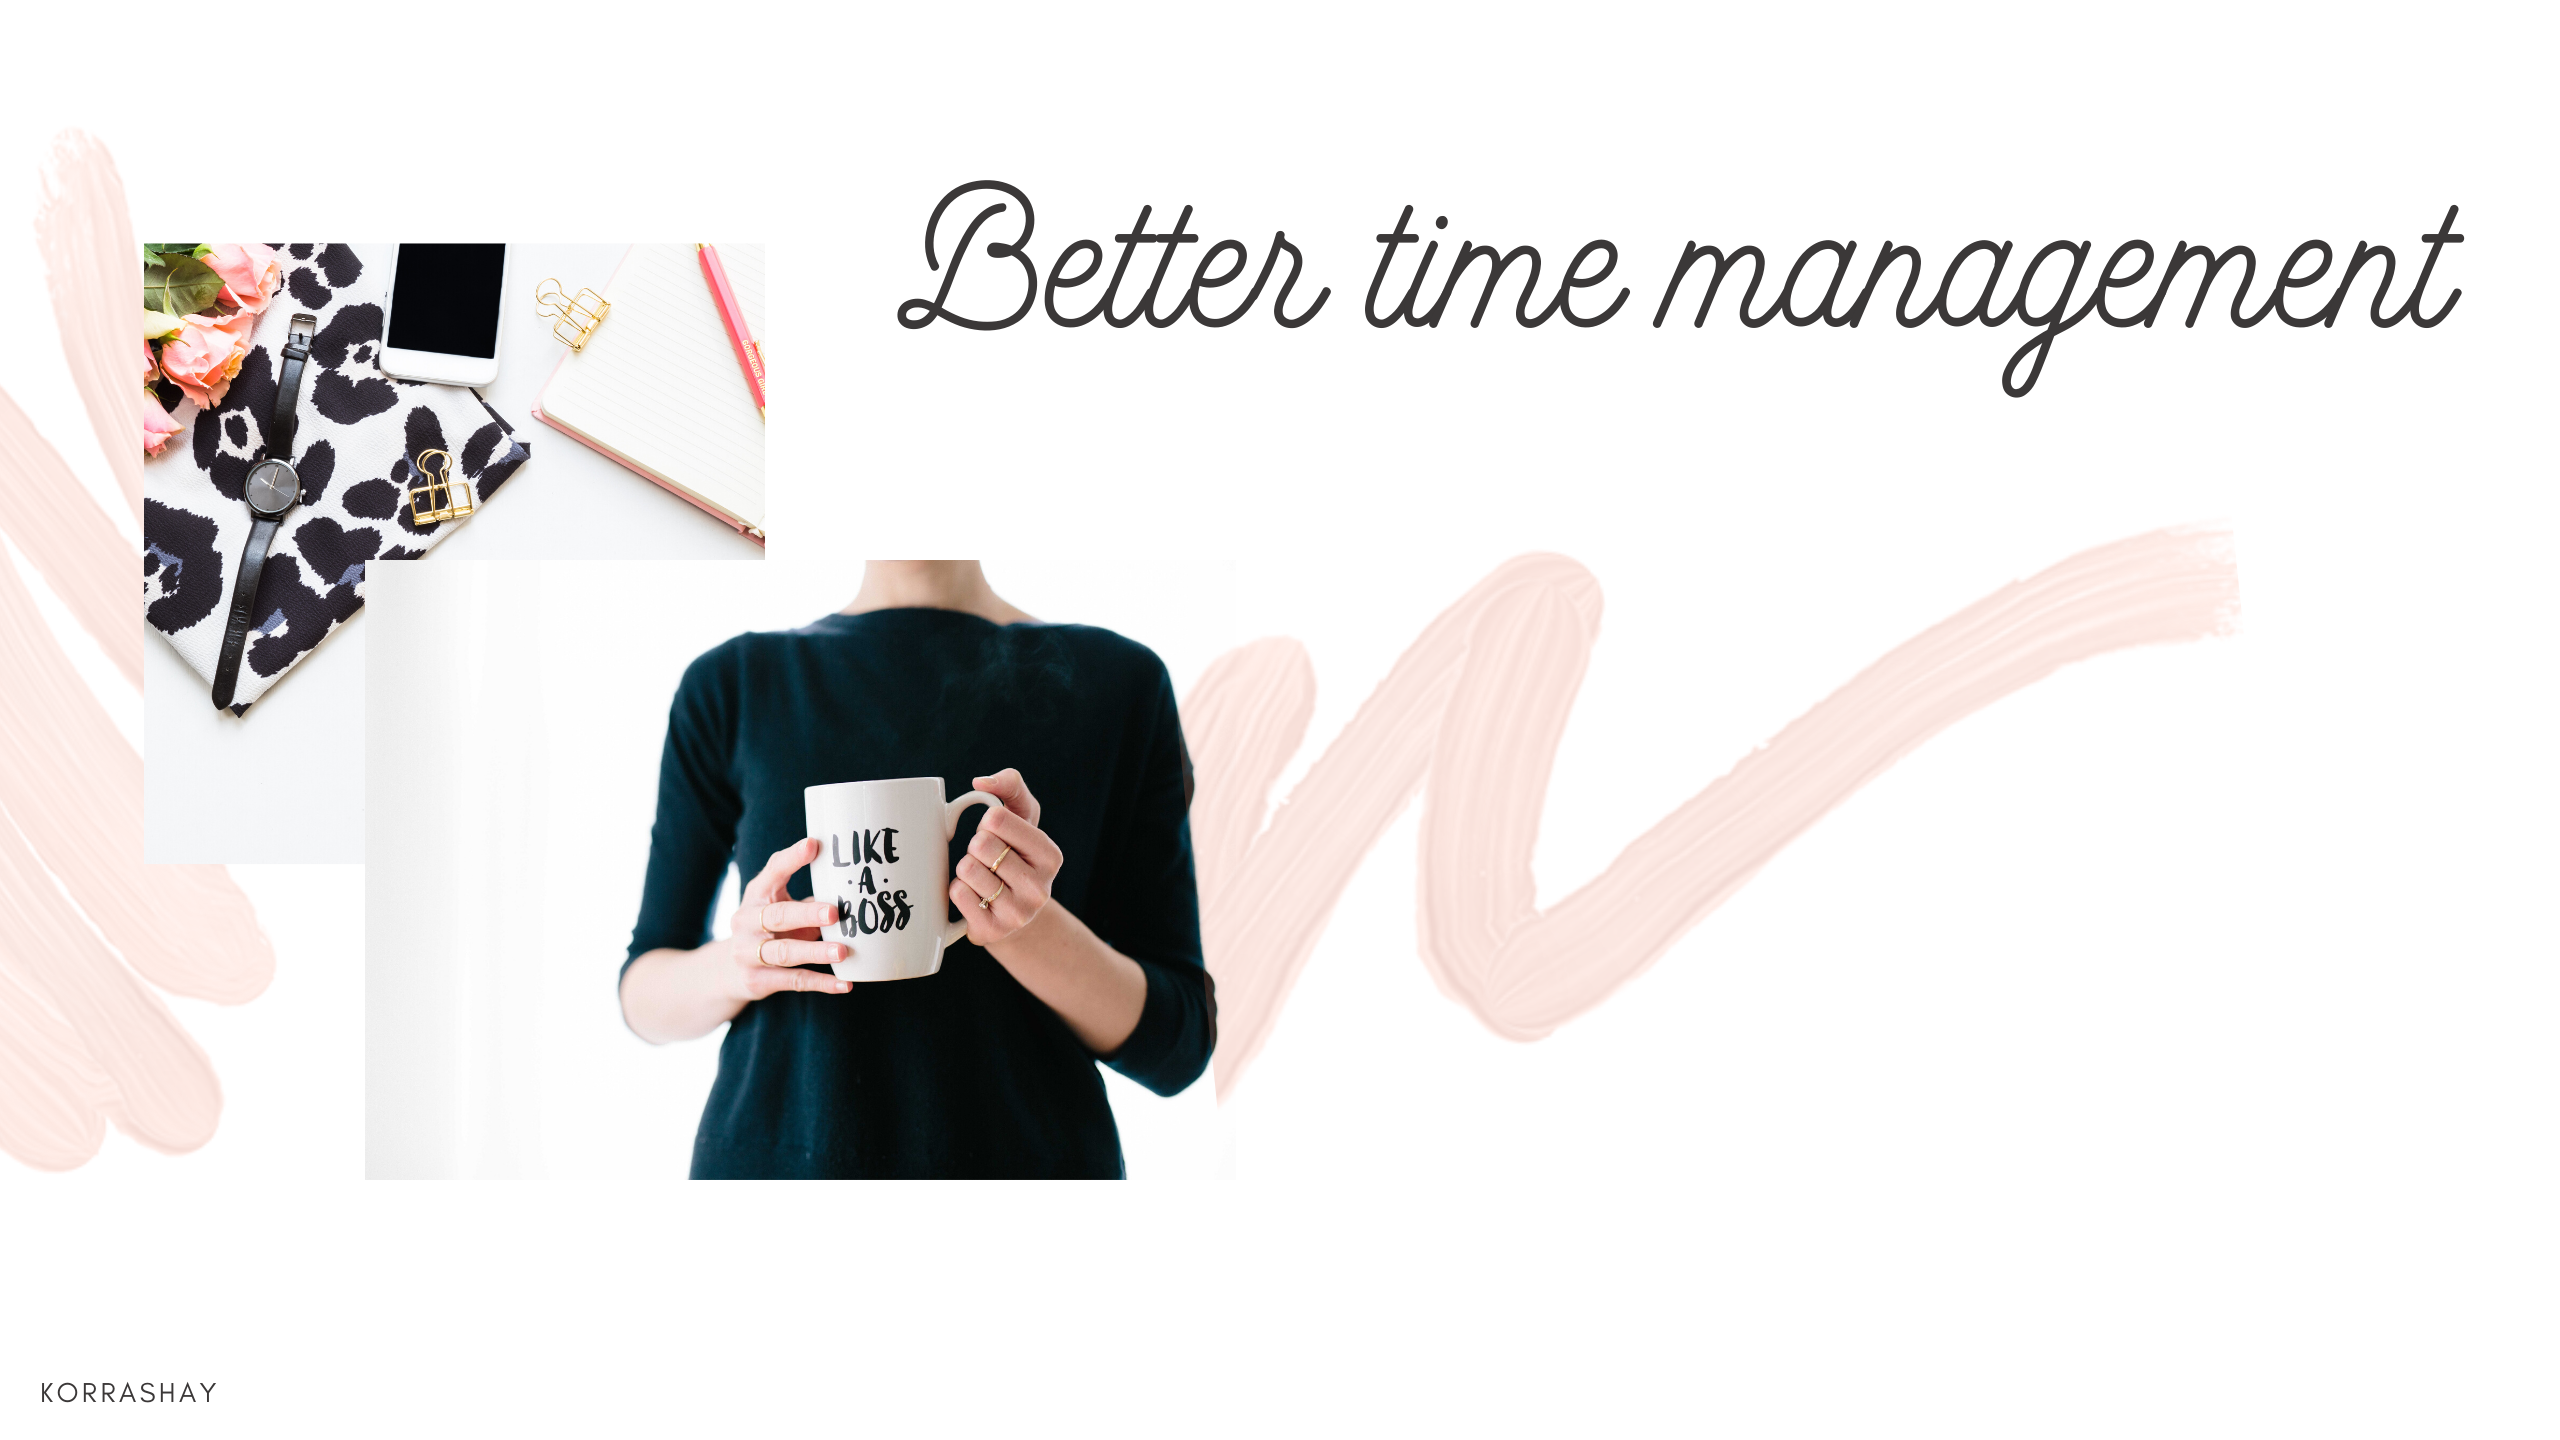 How to be more confident by learning better time management